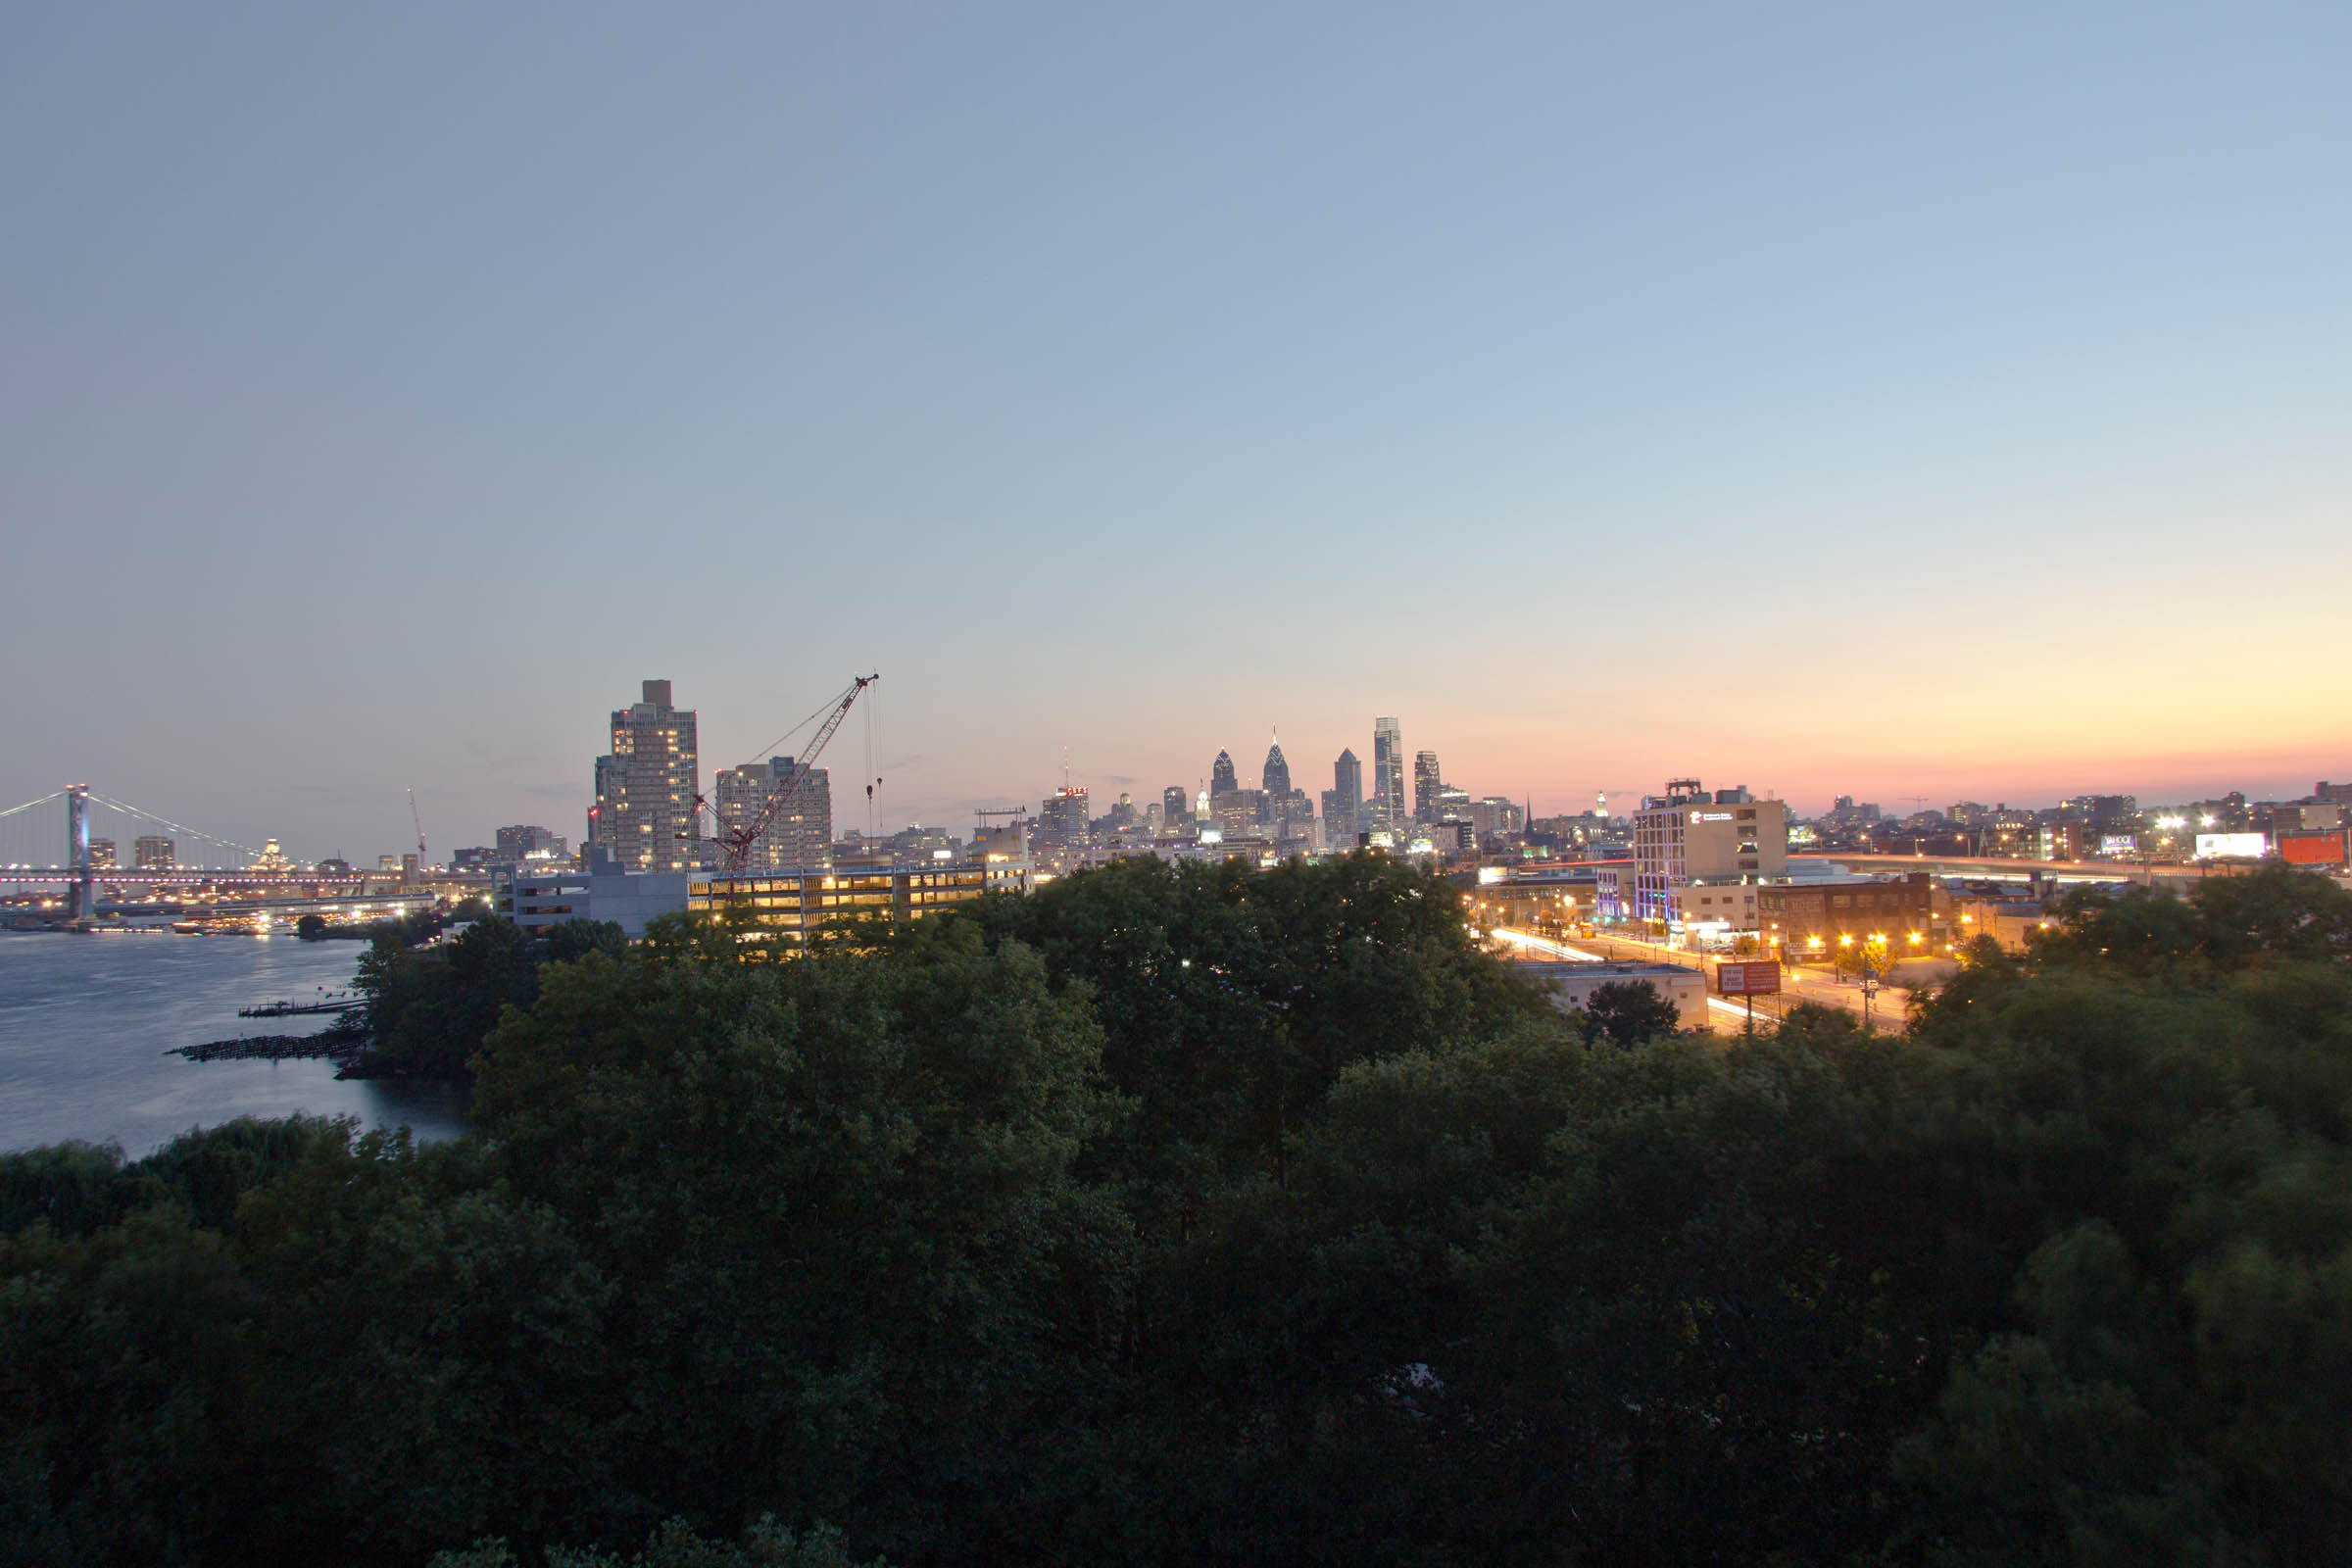 Dusk over Penn Treaty Park looking towards downtown Philadelphia, PA, USA, 2015.